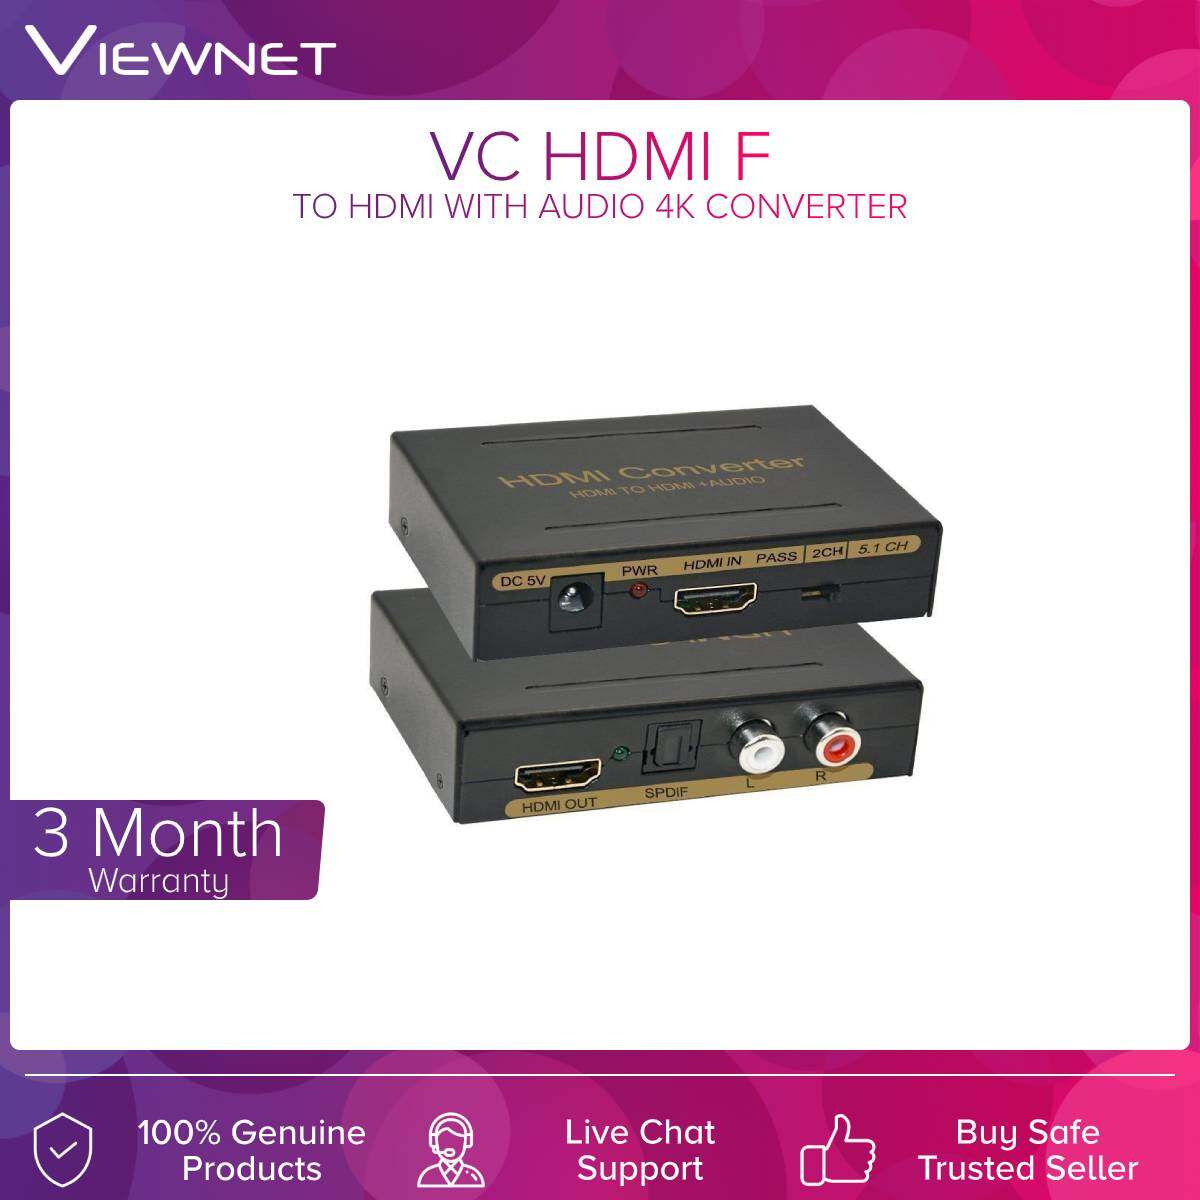 VC Hdmi To Hdmi With Audio 4K Converter